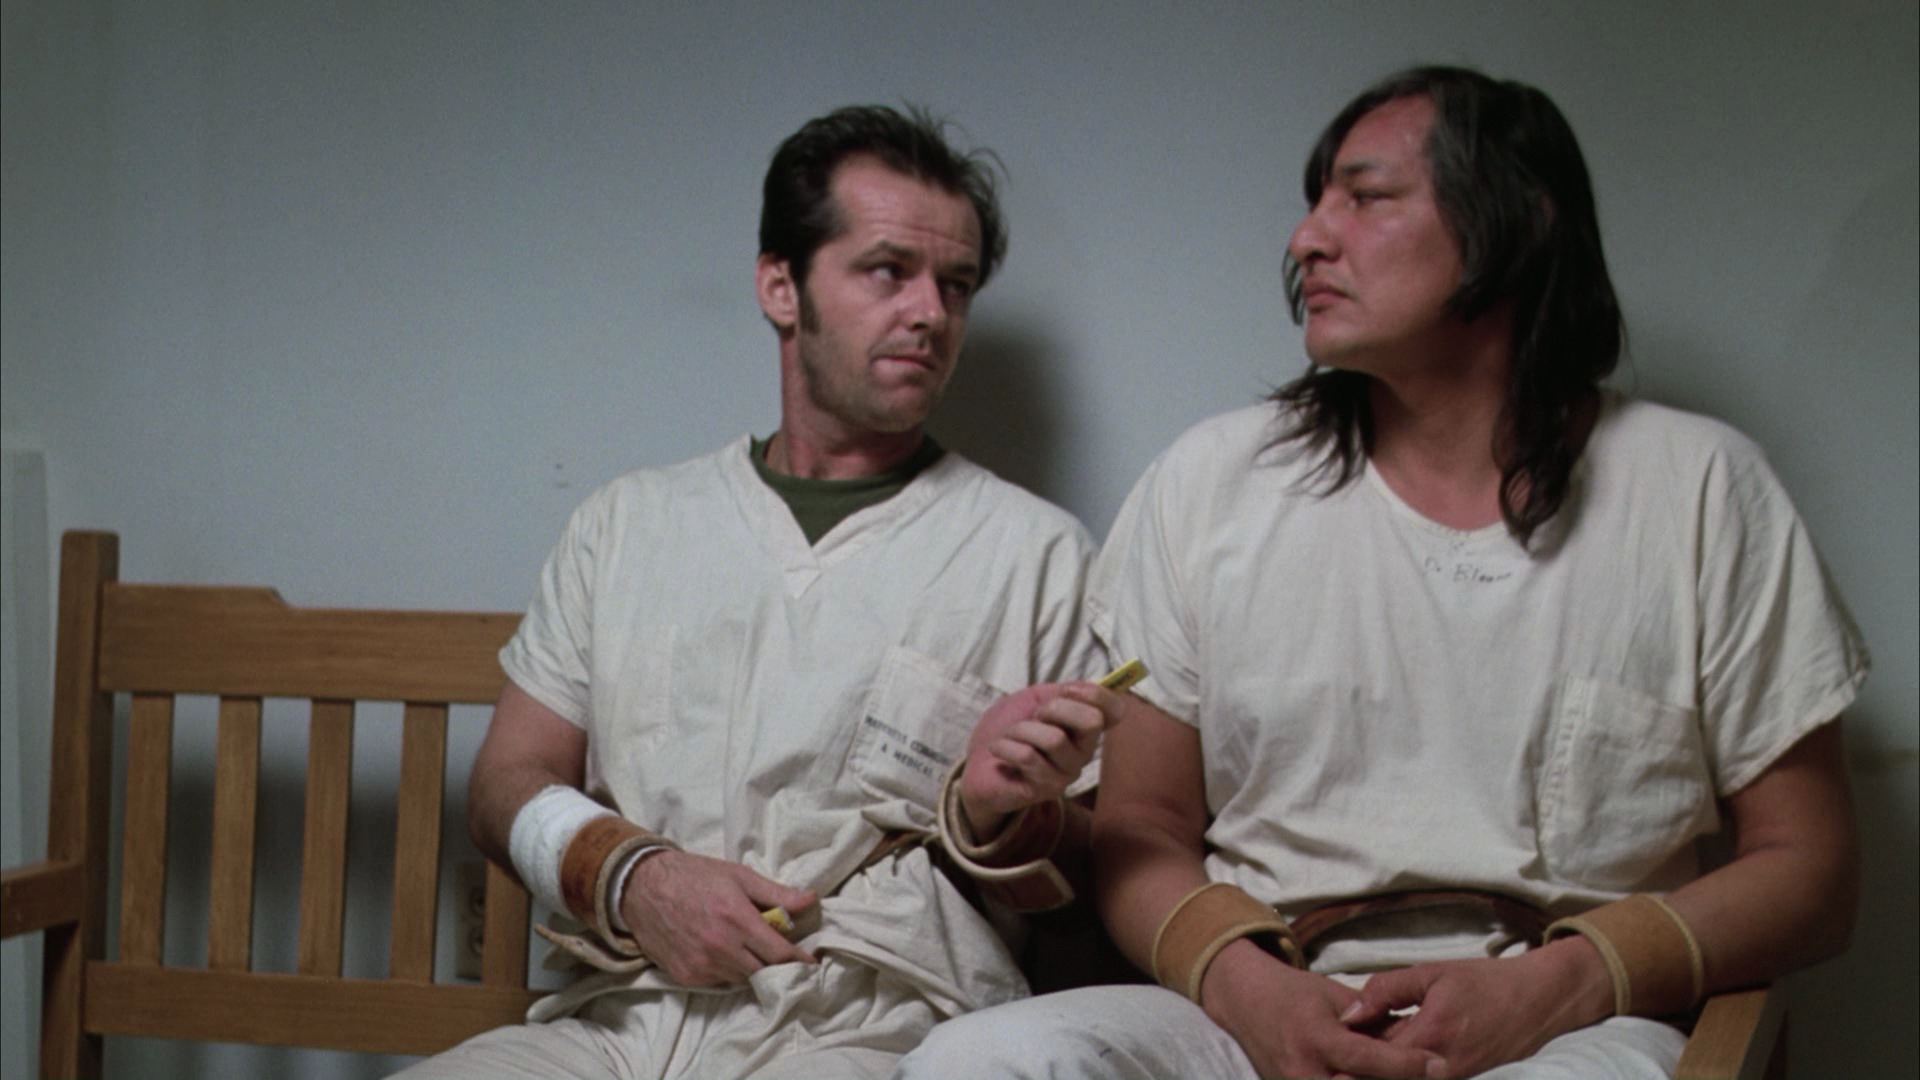 the trials of ray smith and randle mcmurphy in the dharma bums by jack kerouac and one flew over the